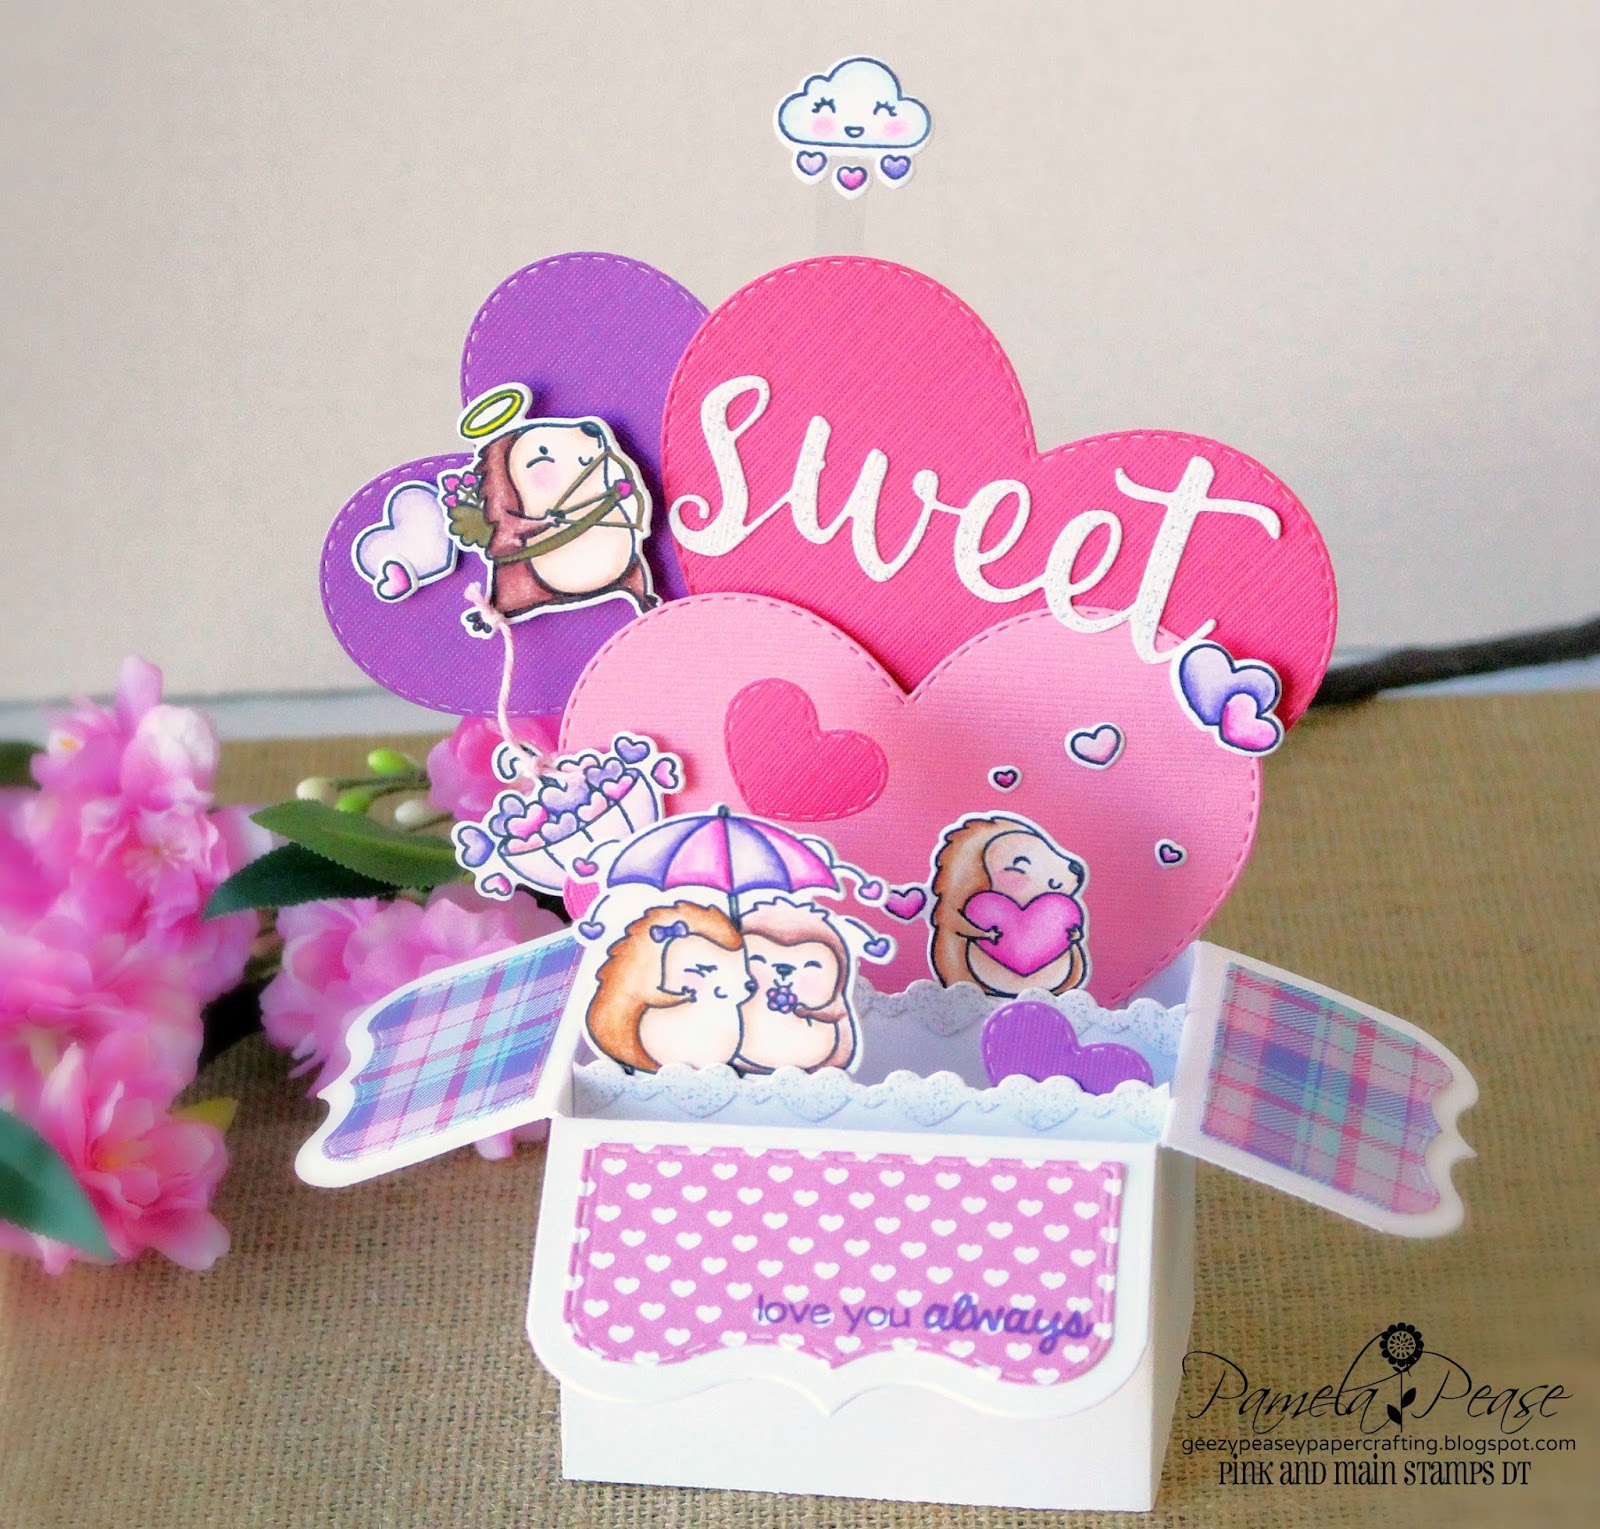 geezypeasey papercrafting: Sweet Love Box Card